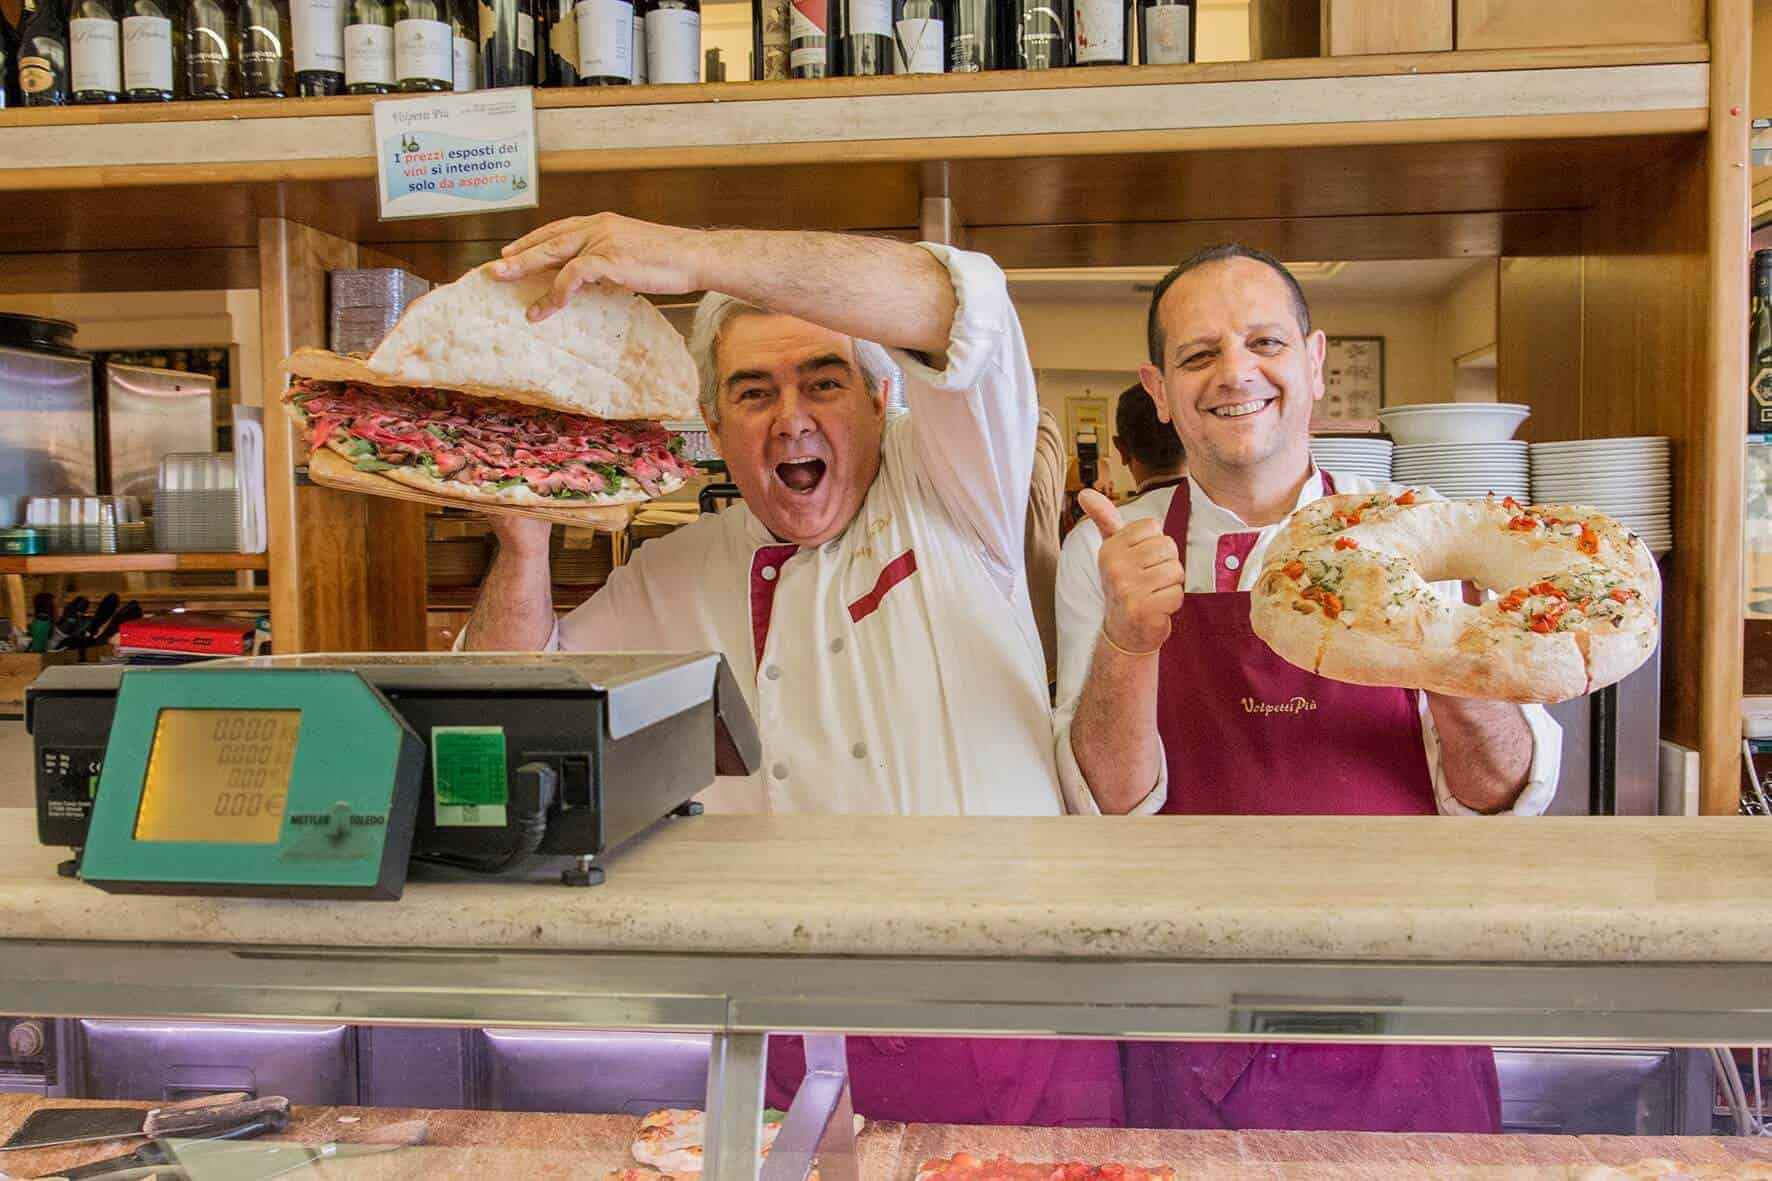 Enjoy authentic Roman cuisine and enthusiasm at cafeteria Volpetti Piu Photo credit - Eating Europe @ATasteforTravel